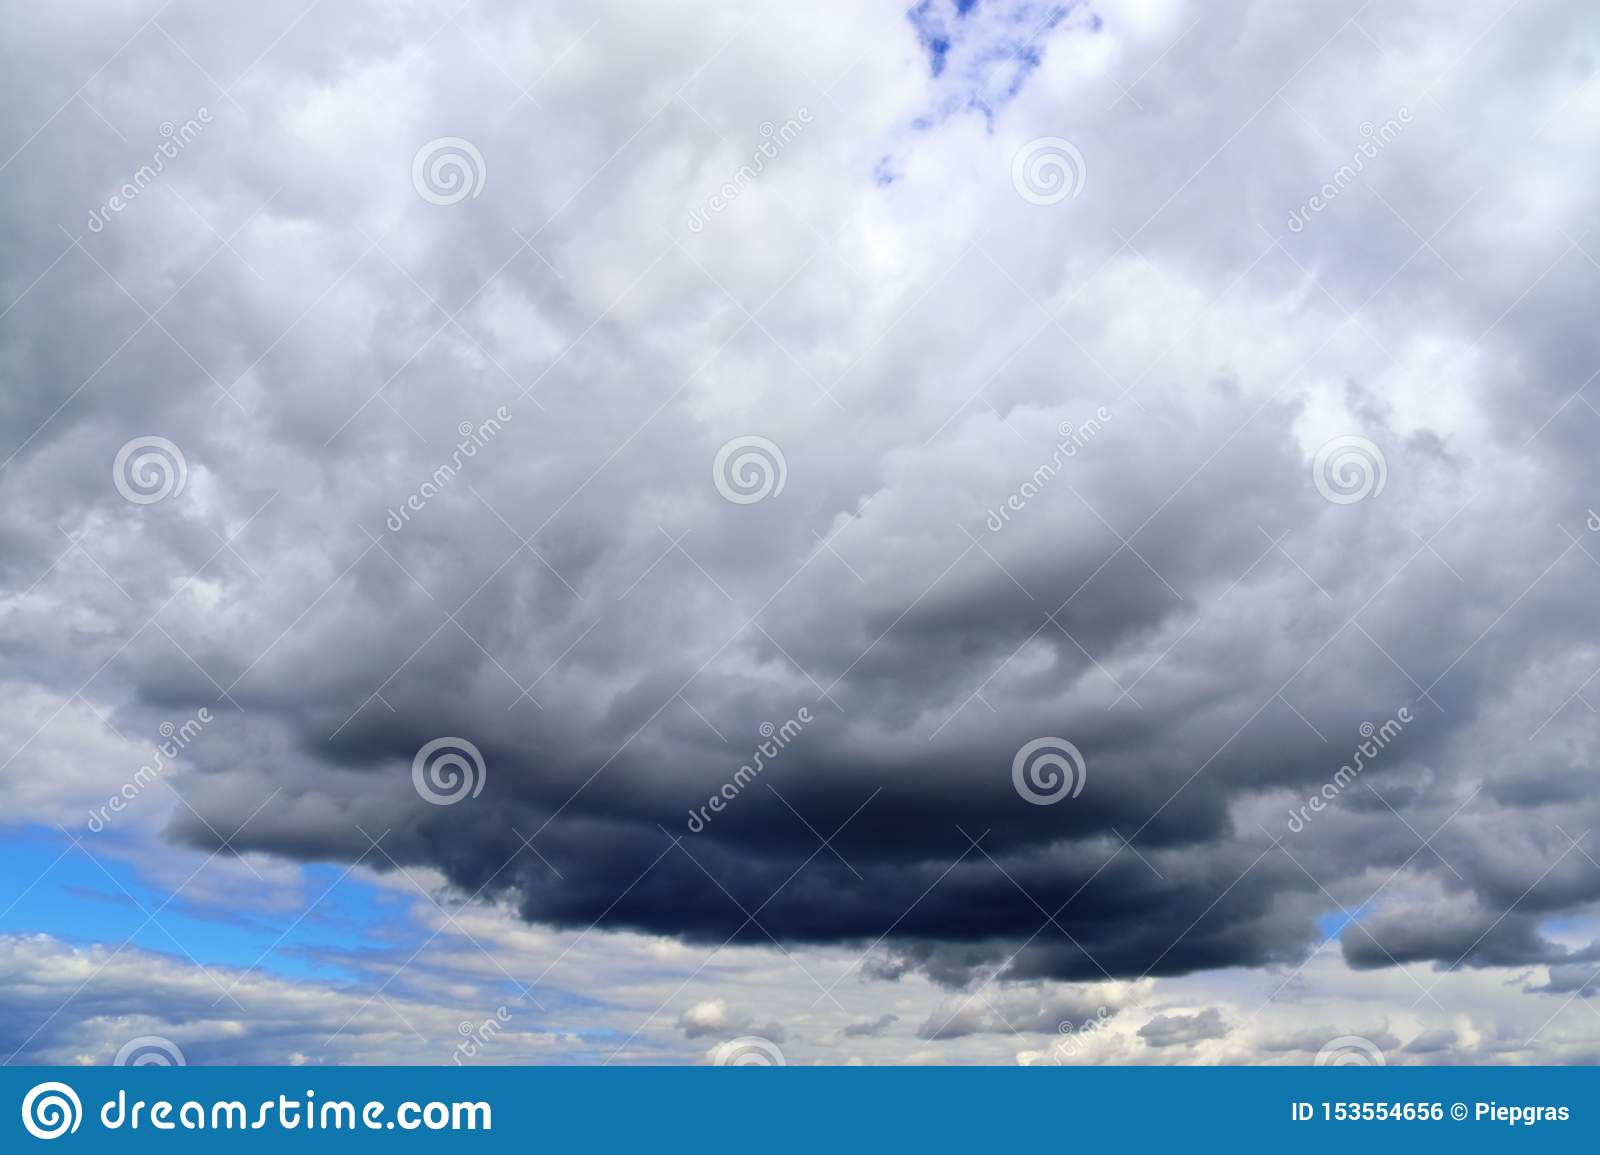 Detailed view on dark clouds forming before a storm